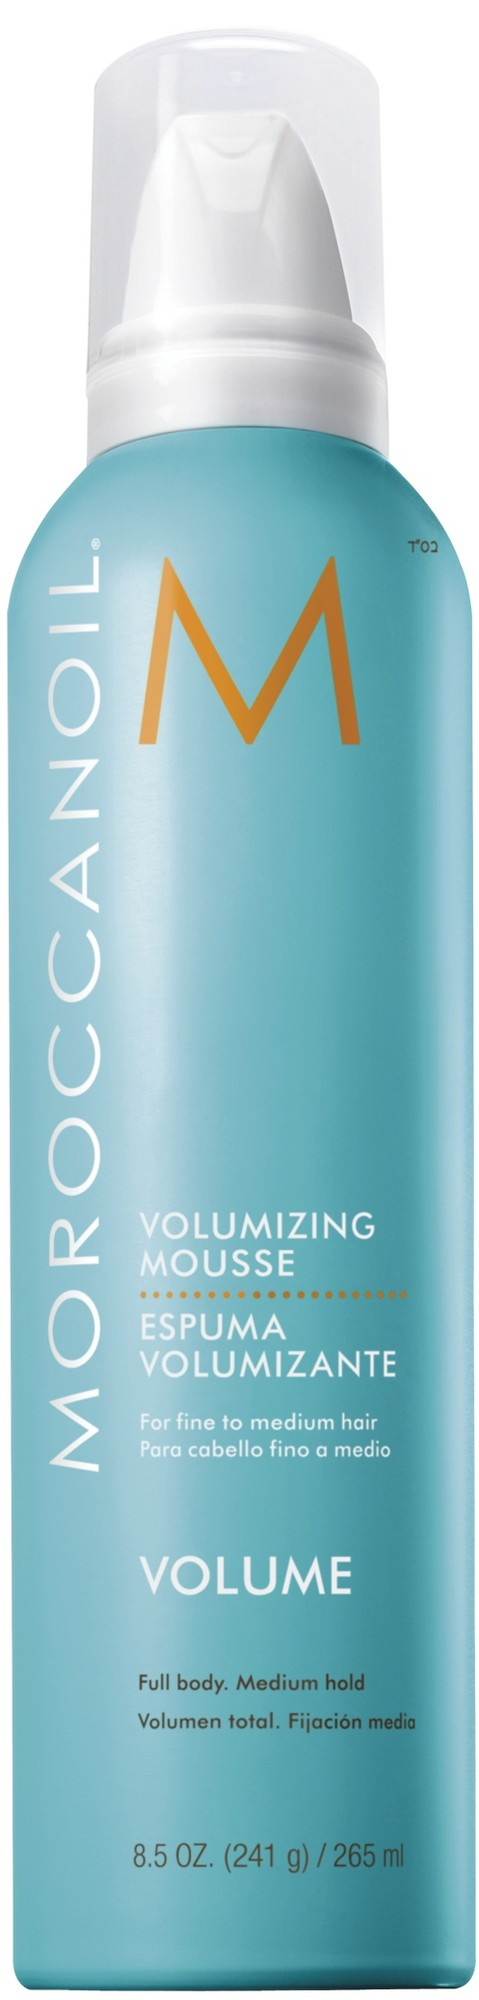 Volumizing Mousse